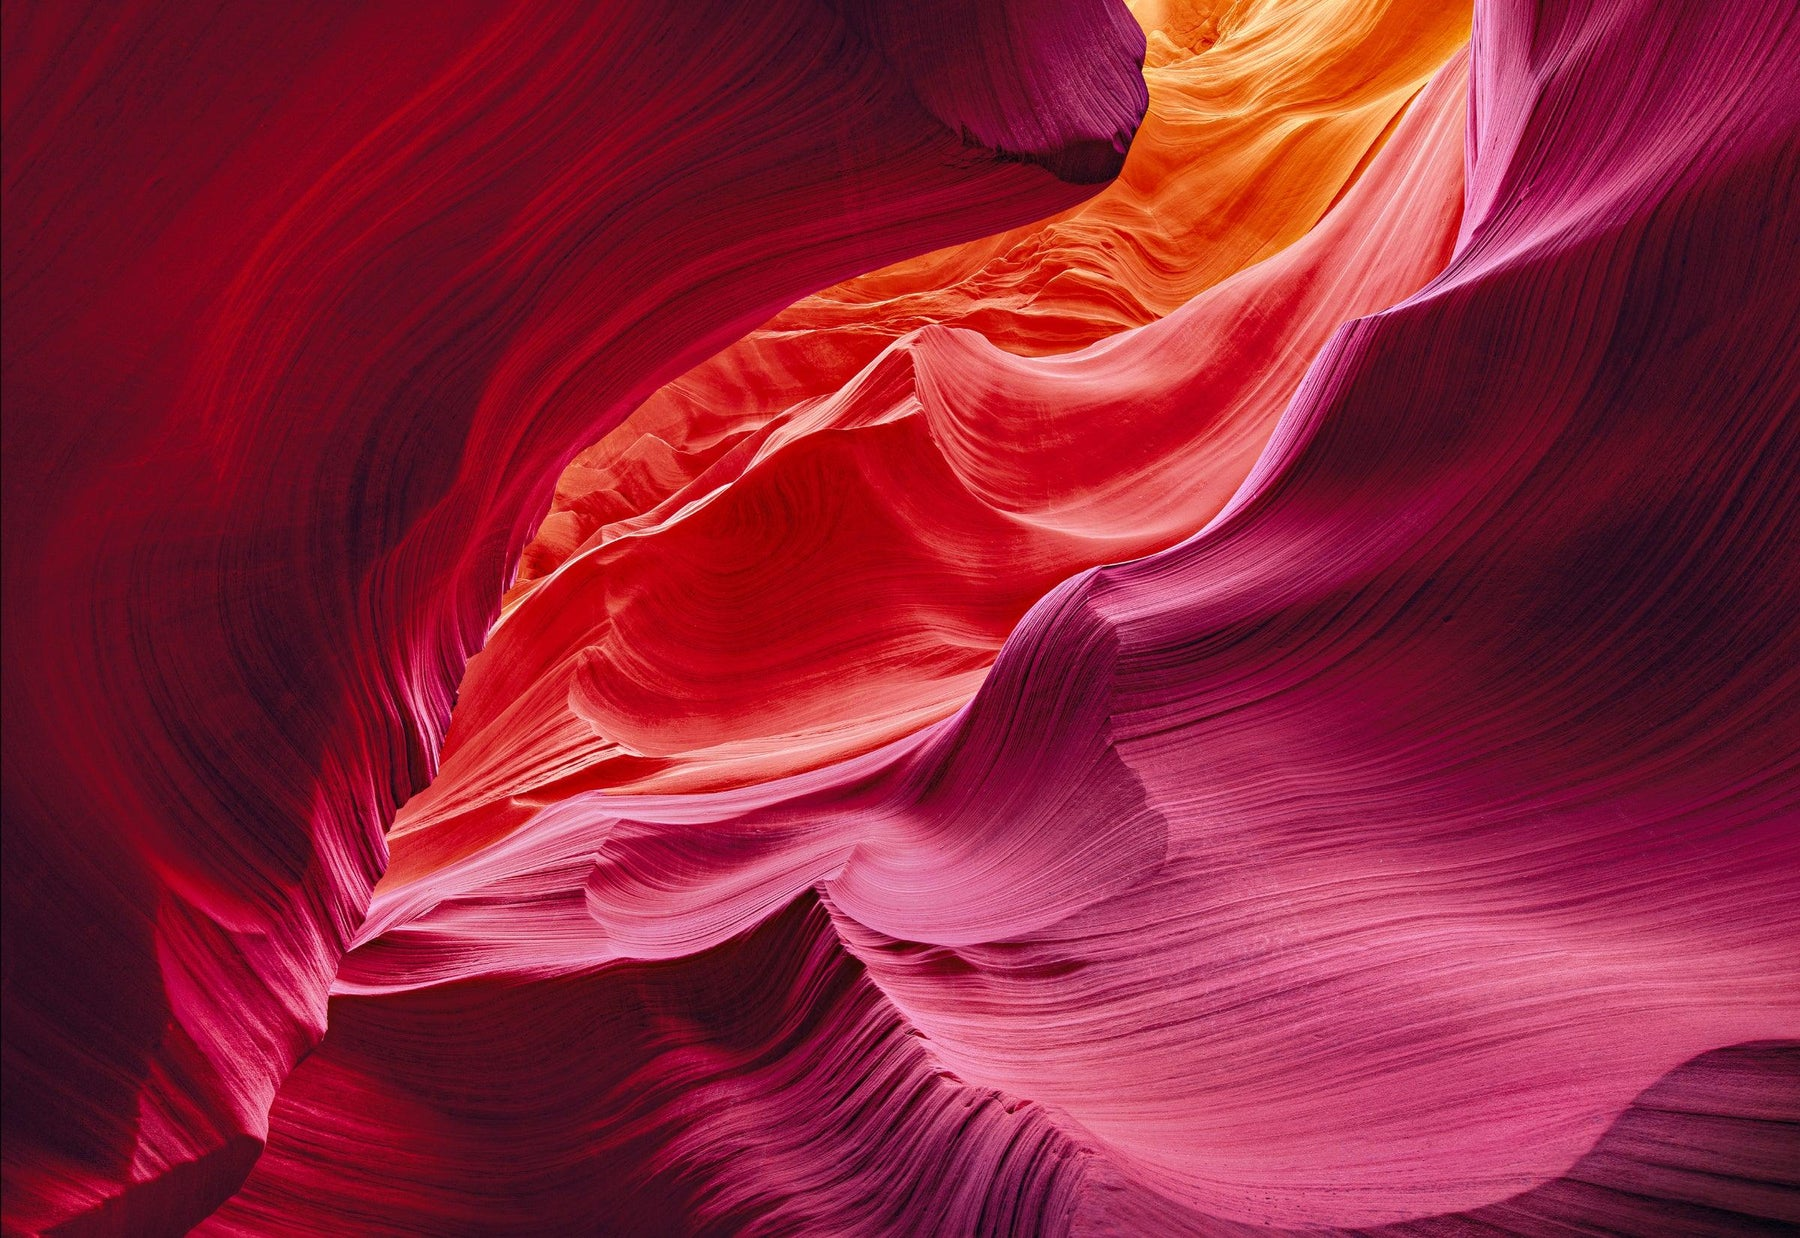 Red orange yellow and pink wave shaped sandstone walls of the slot canyons in Antelope Canyon Arizona